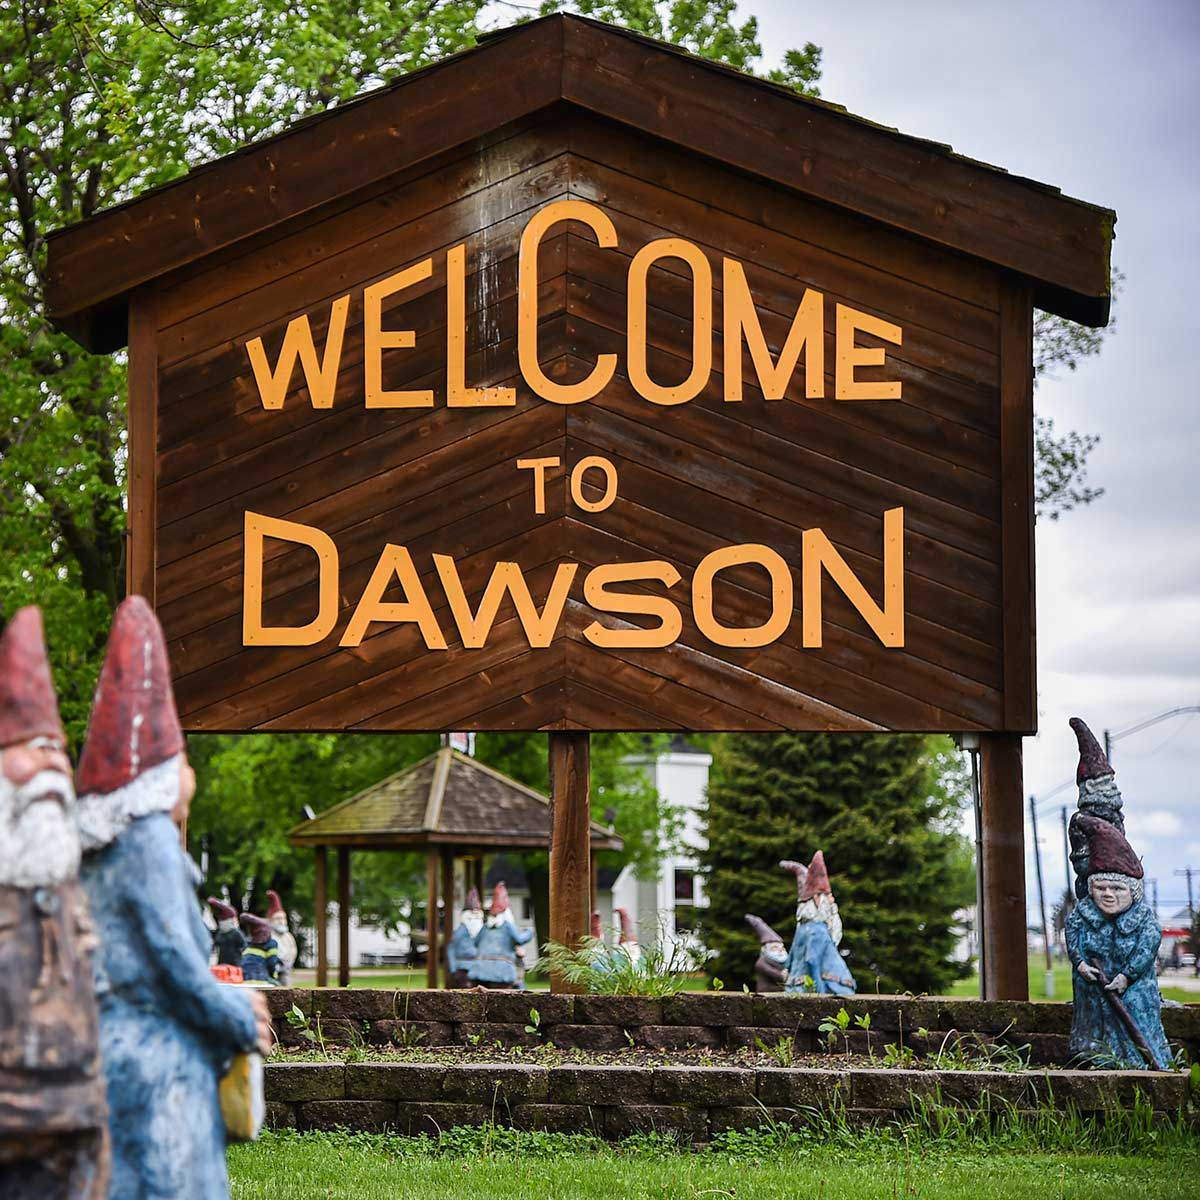 A wooden sign welcomes visitors to Maple Dawson Park near Moorestown, NJ.